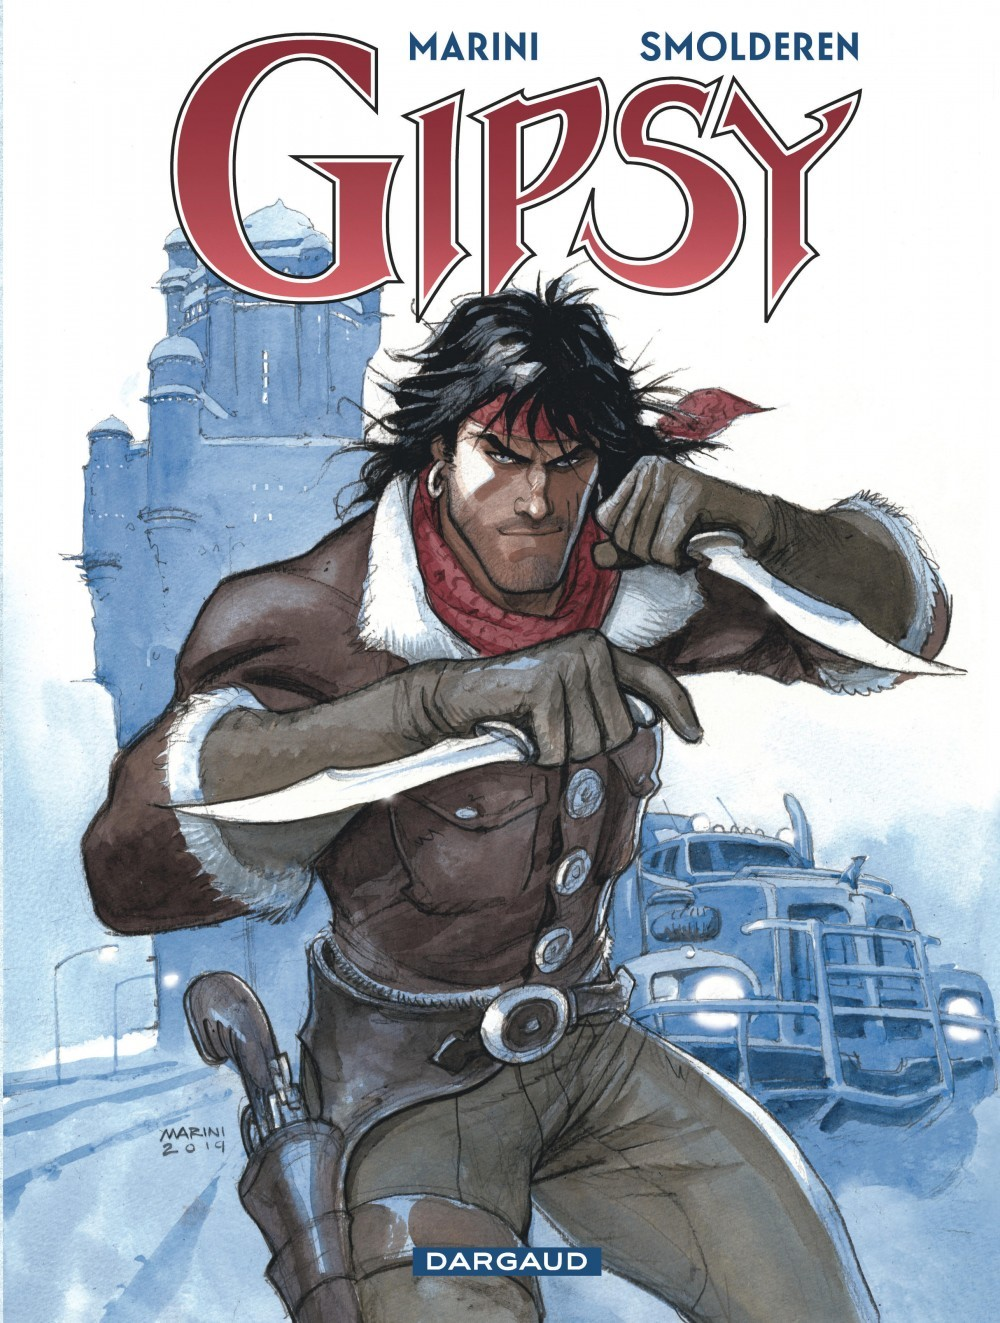 GIPSY (INTEGRALE) - GIPSY - INTEGRALES - TOME 0 - GIPSY - INTEGRALE COMPLETE